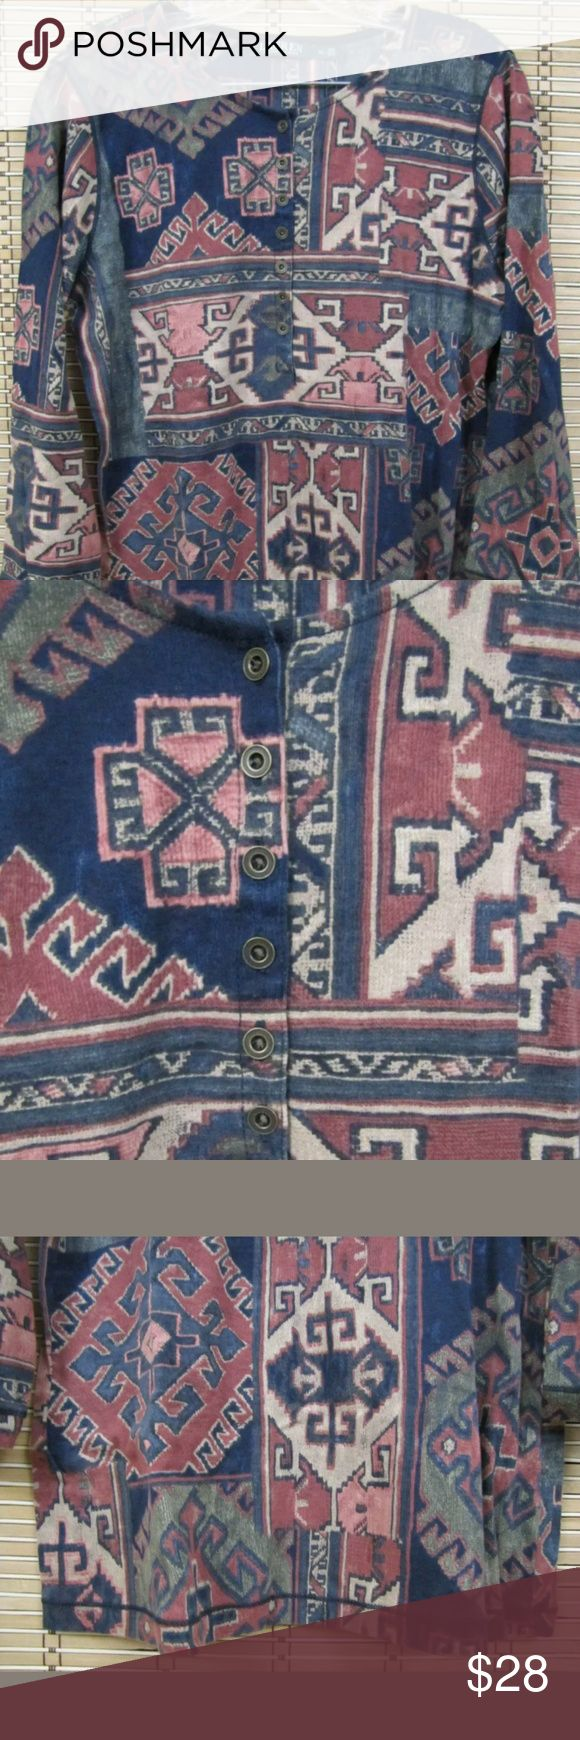 """Lauren Ralph Lauren Womens Sz XL Aztec Blouse Top Lauren Ralph Lauren Womens Sz XL Multi-Color 1/2 Button Up Aztec LS Blouse Top  Inventory #C040  This item is in Very Good Condition!  Multi-Colored, Aztec Pattern, Long Sleeve, 1/2 Button Up  100% Cotton  Multi-Colored  Size: Women's Sz XL  Pit to Pit (Across Chest):   19""""  Length (Top of Collar to Hem):   25""""  Sleeves (Shoulder to Shoulder) 19"""" Lauren Ralph Lauren Tops Blouses"""